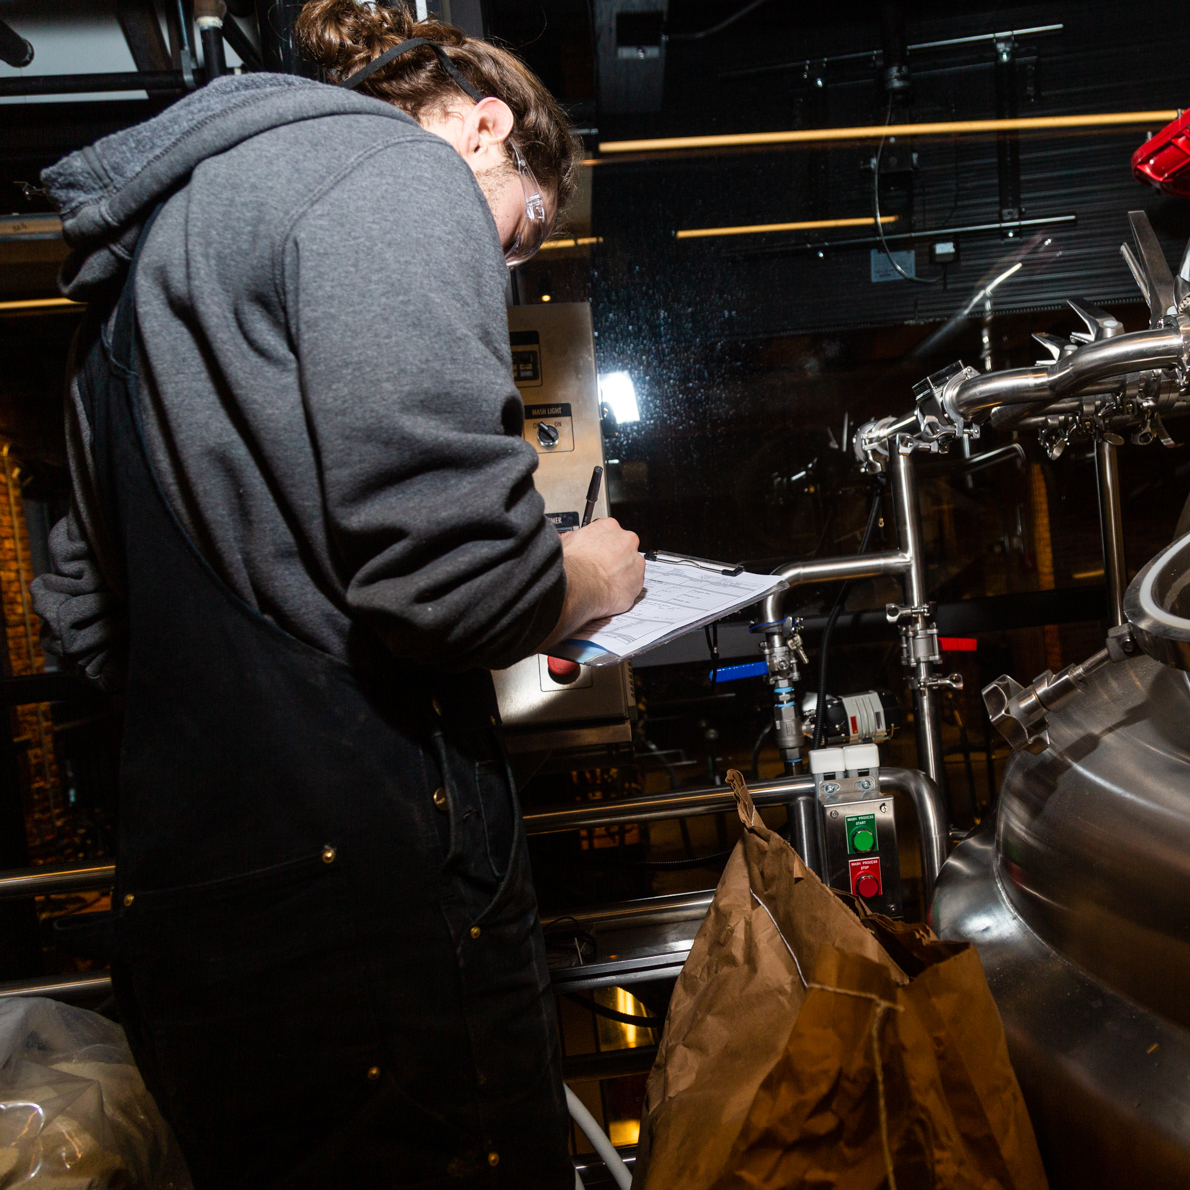 Ryan Gillette on our Fort Point brewhouse